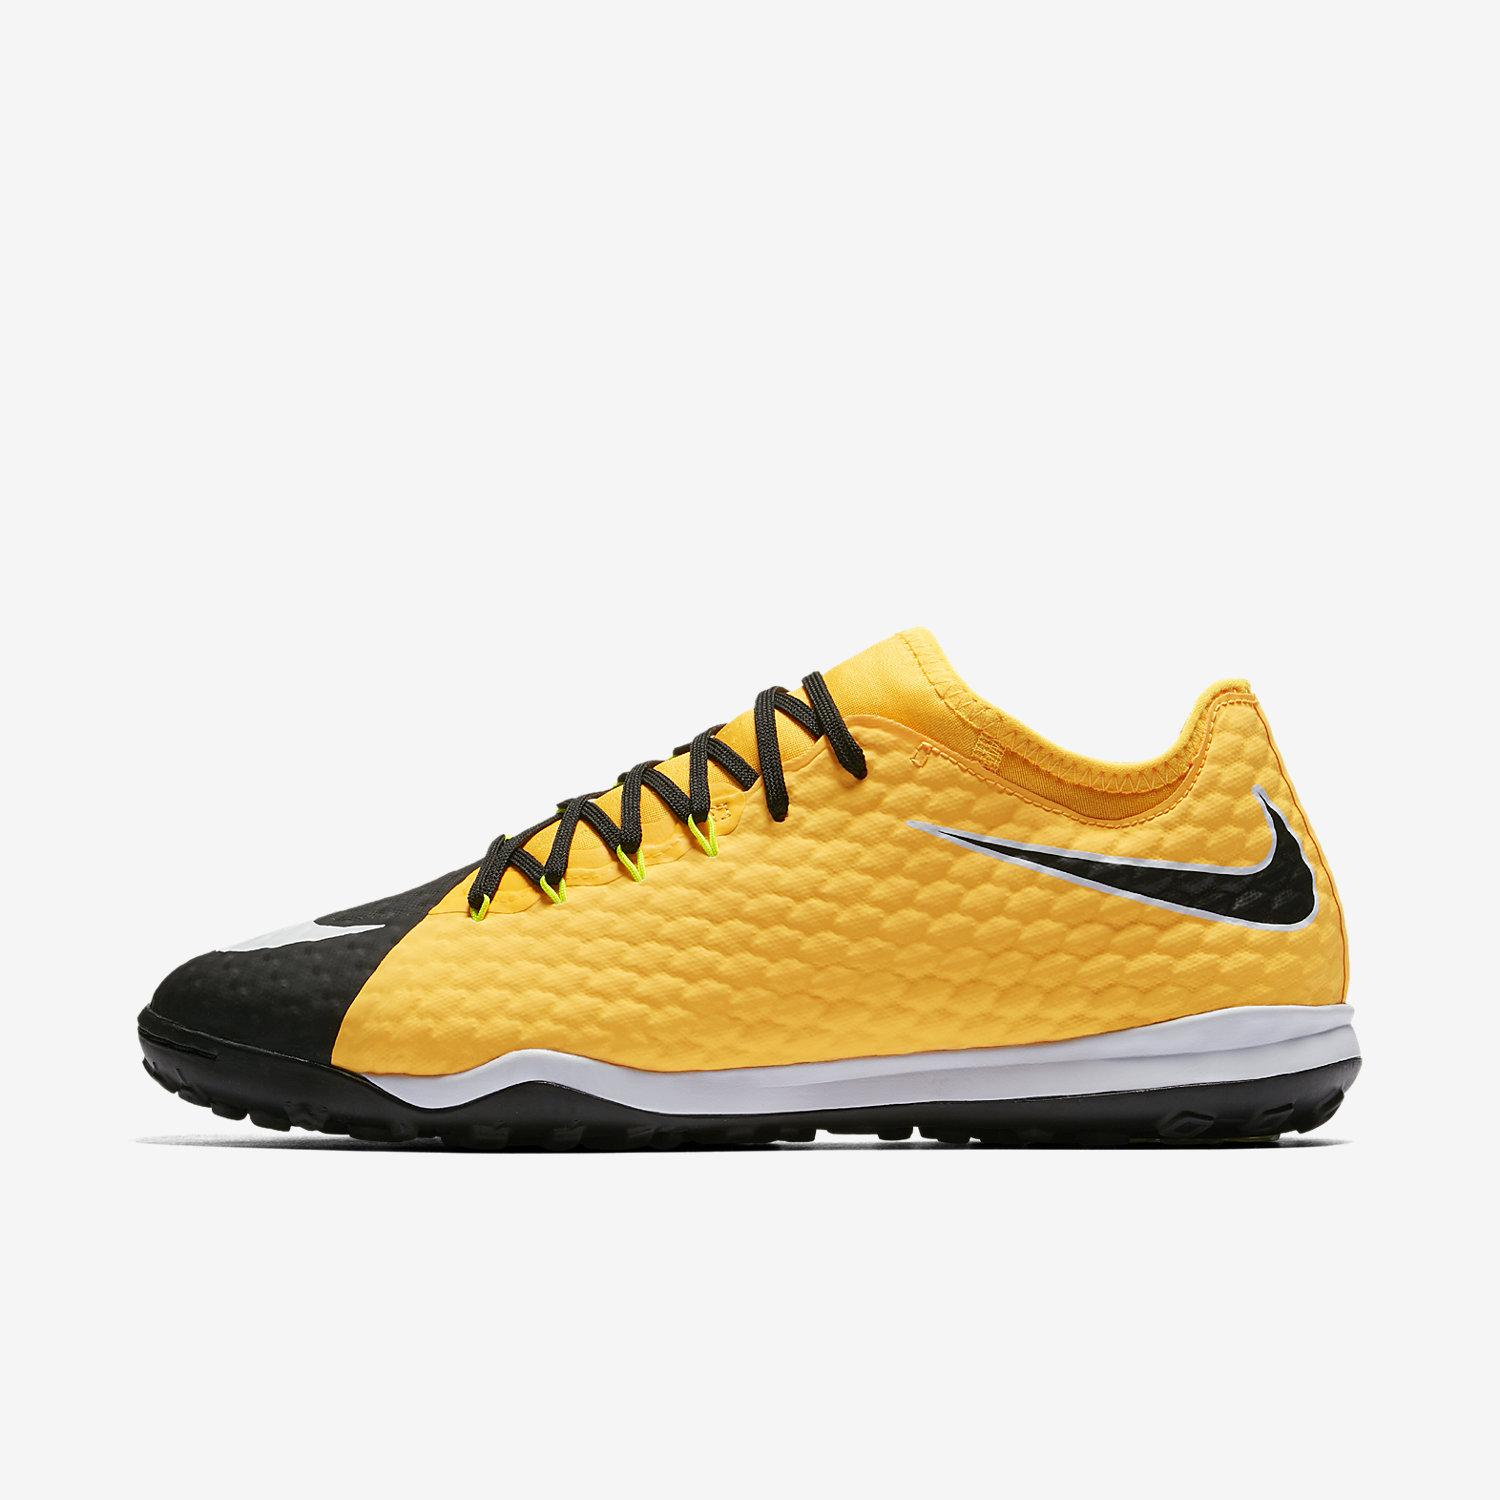 on sale e1a82 d38d1 Nike Futsal Shoes Hypervenomx Finale Ii Tf Laser Orange white-black-volt -  Tifoshop.com